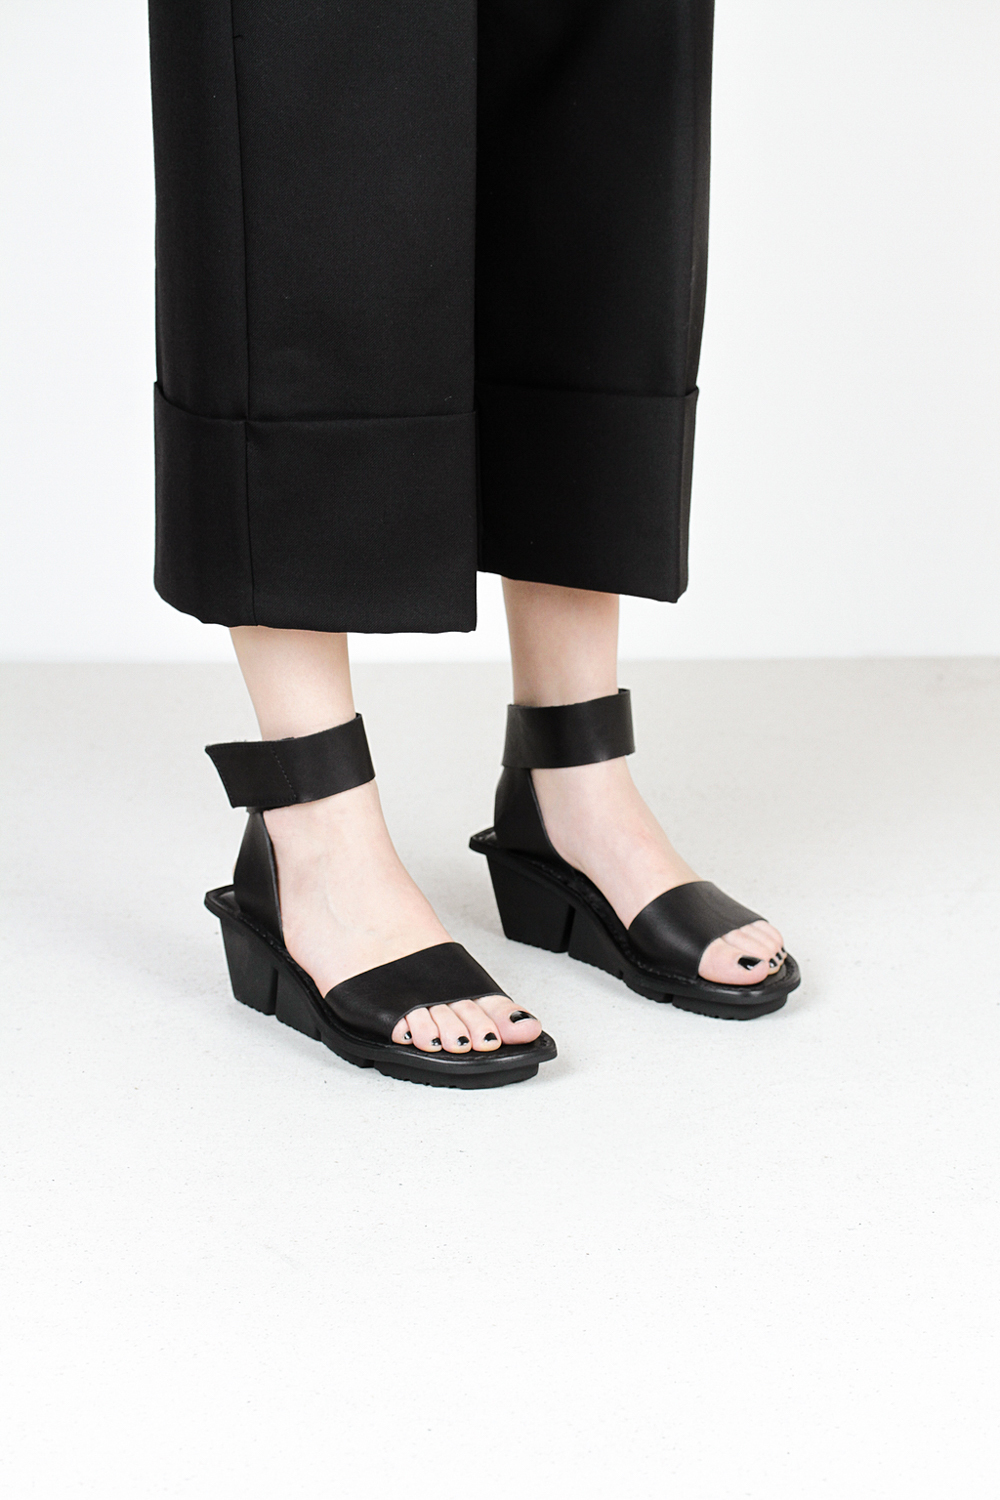 Trippen plucky f waw blk leather sandals